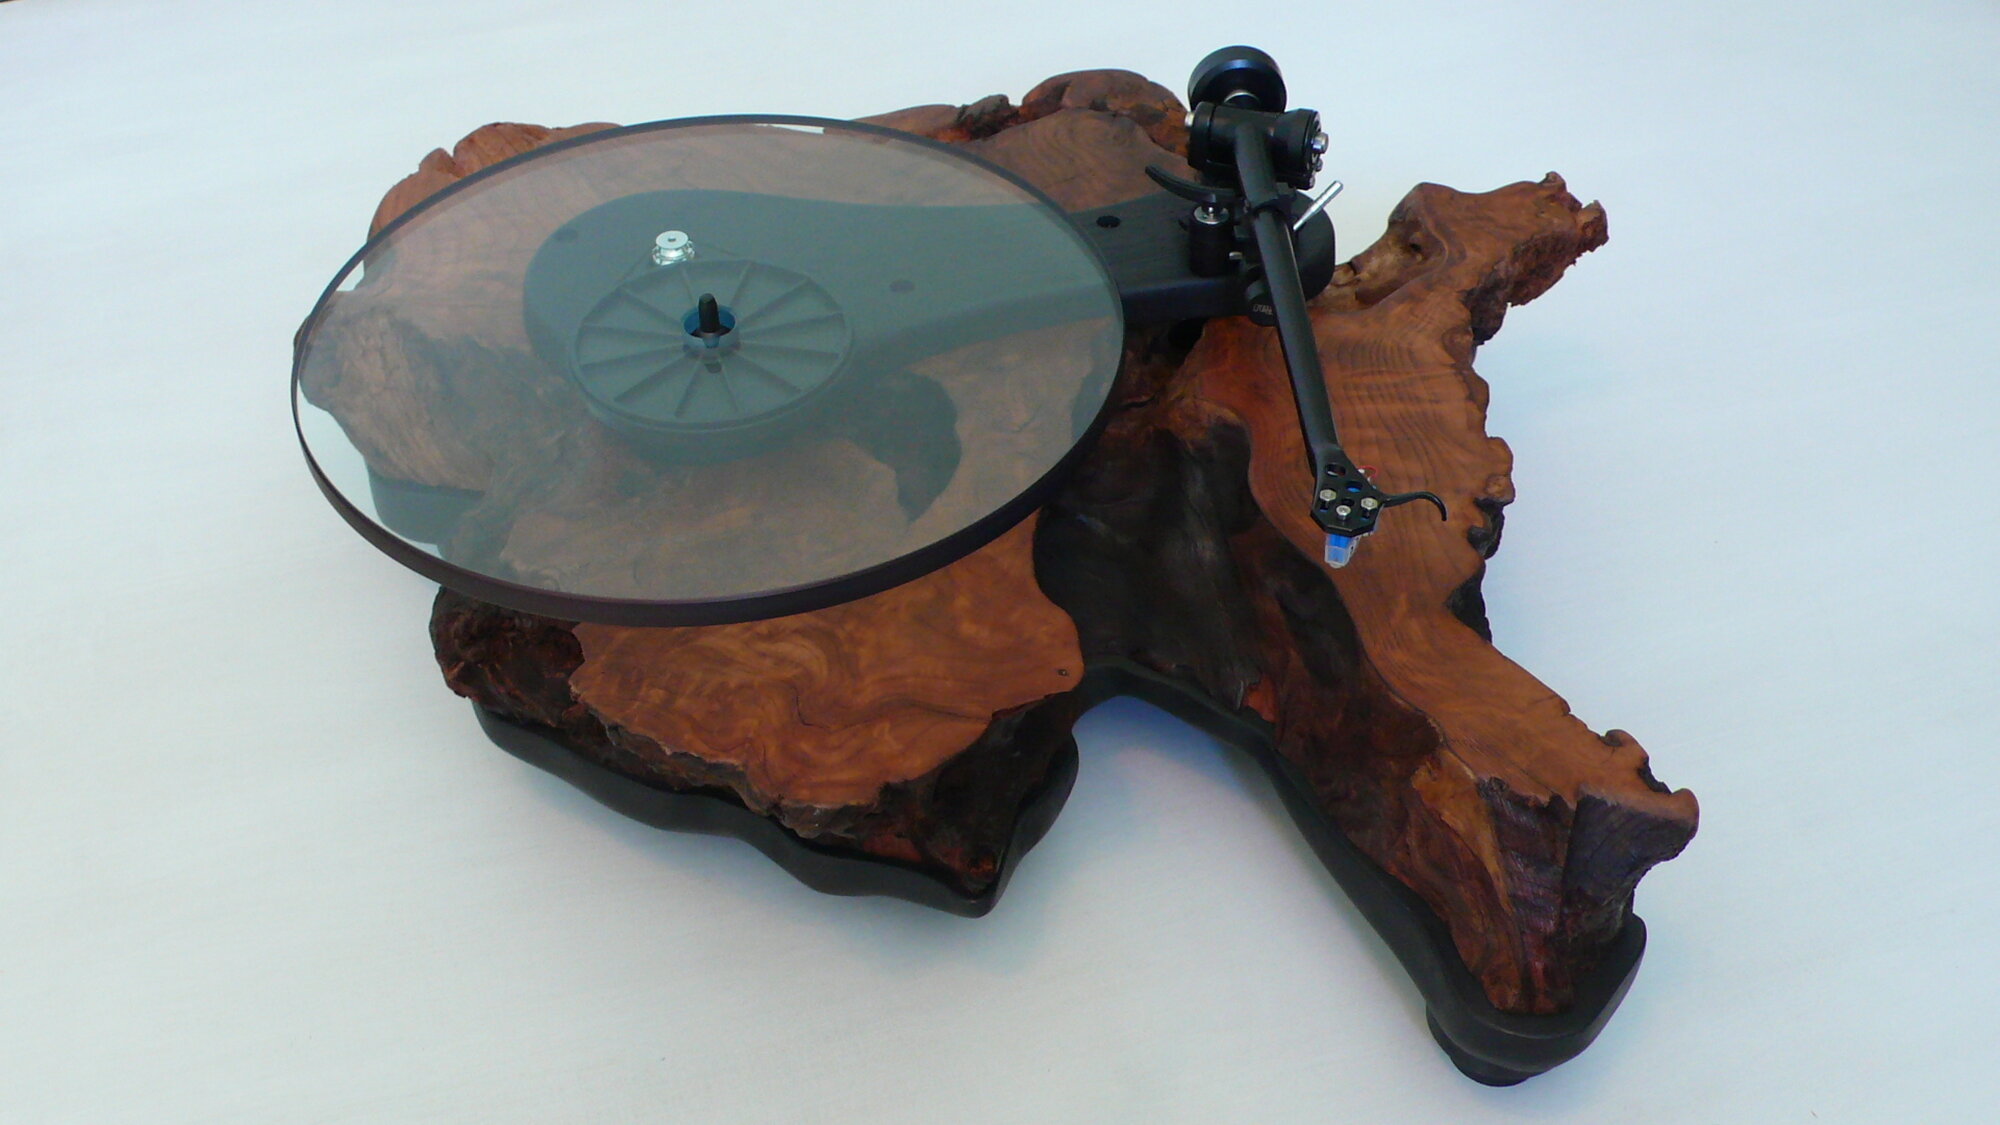 Thoreau Turntable